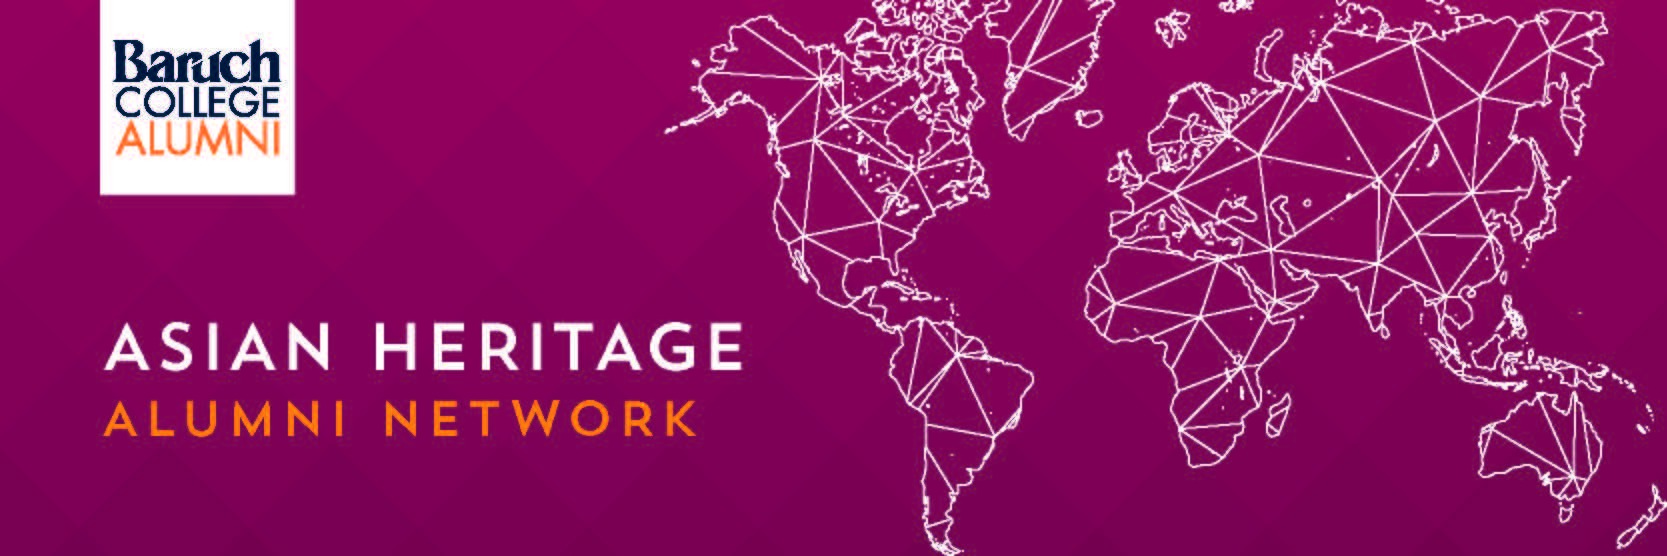 Asian Heritage Alumni Network